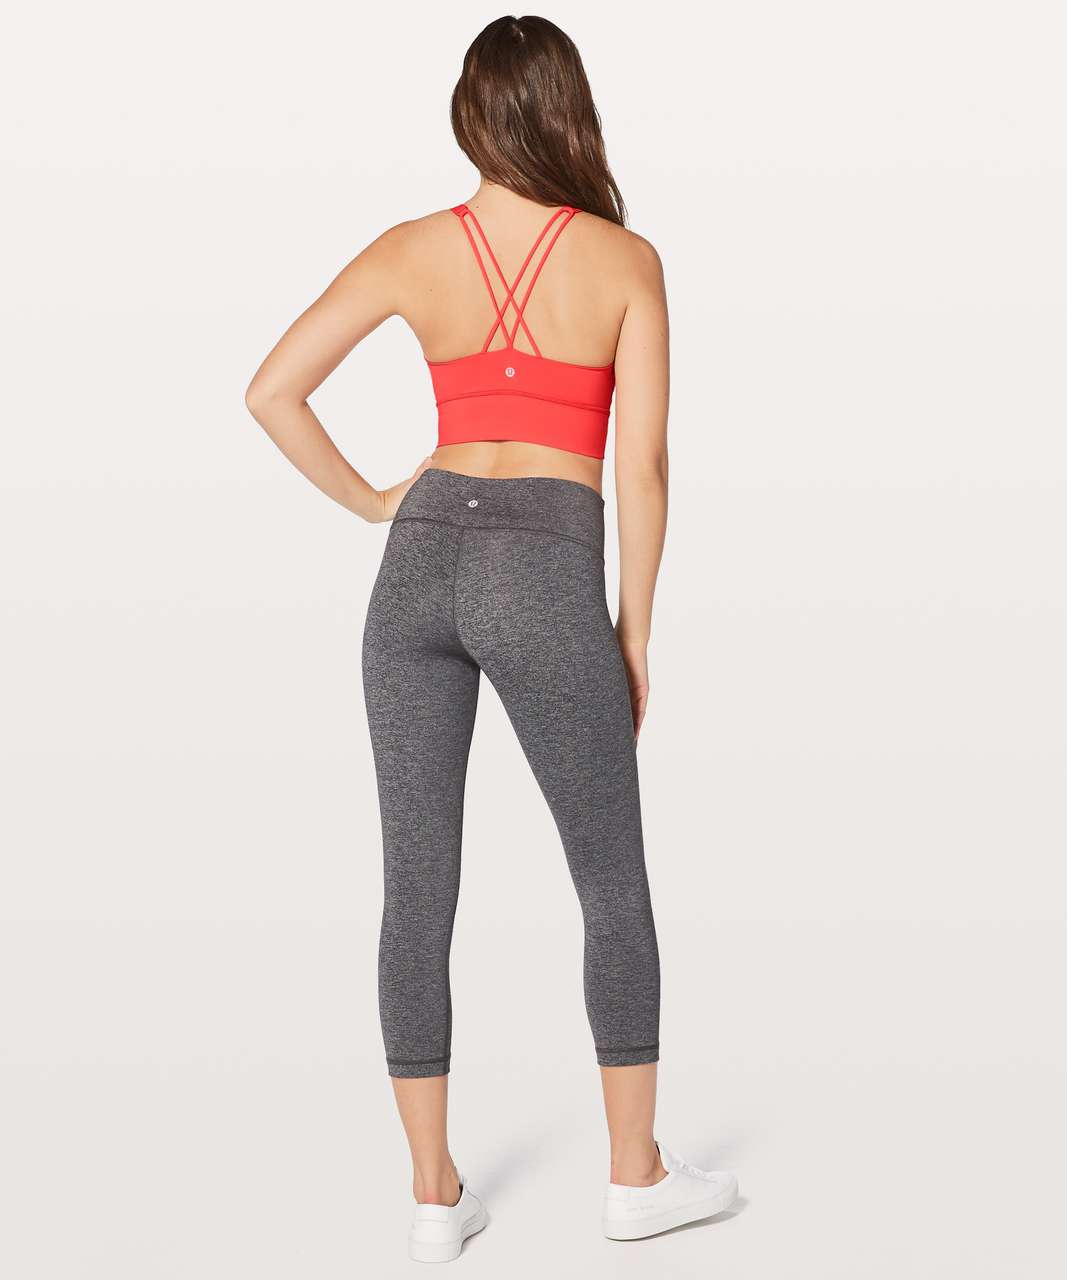 Lululemon Free To Be Bra Long Line - Vivid Flame